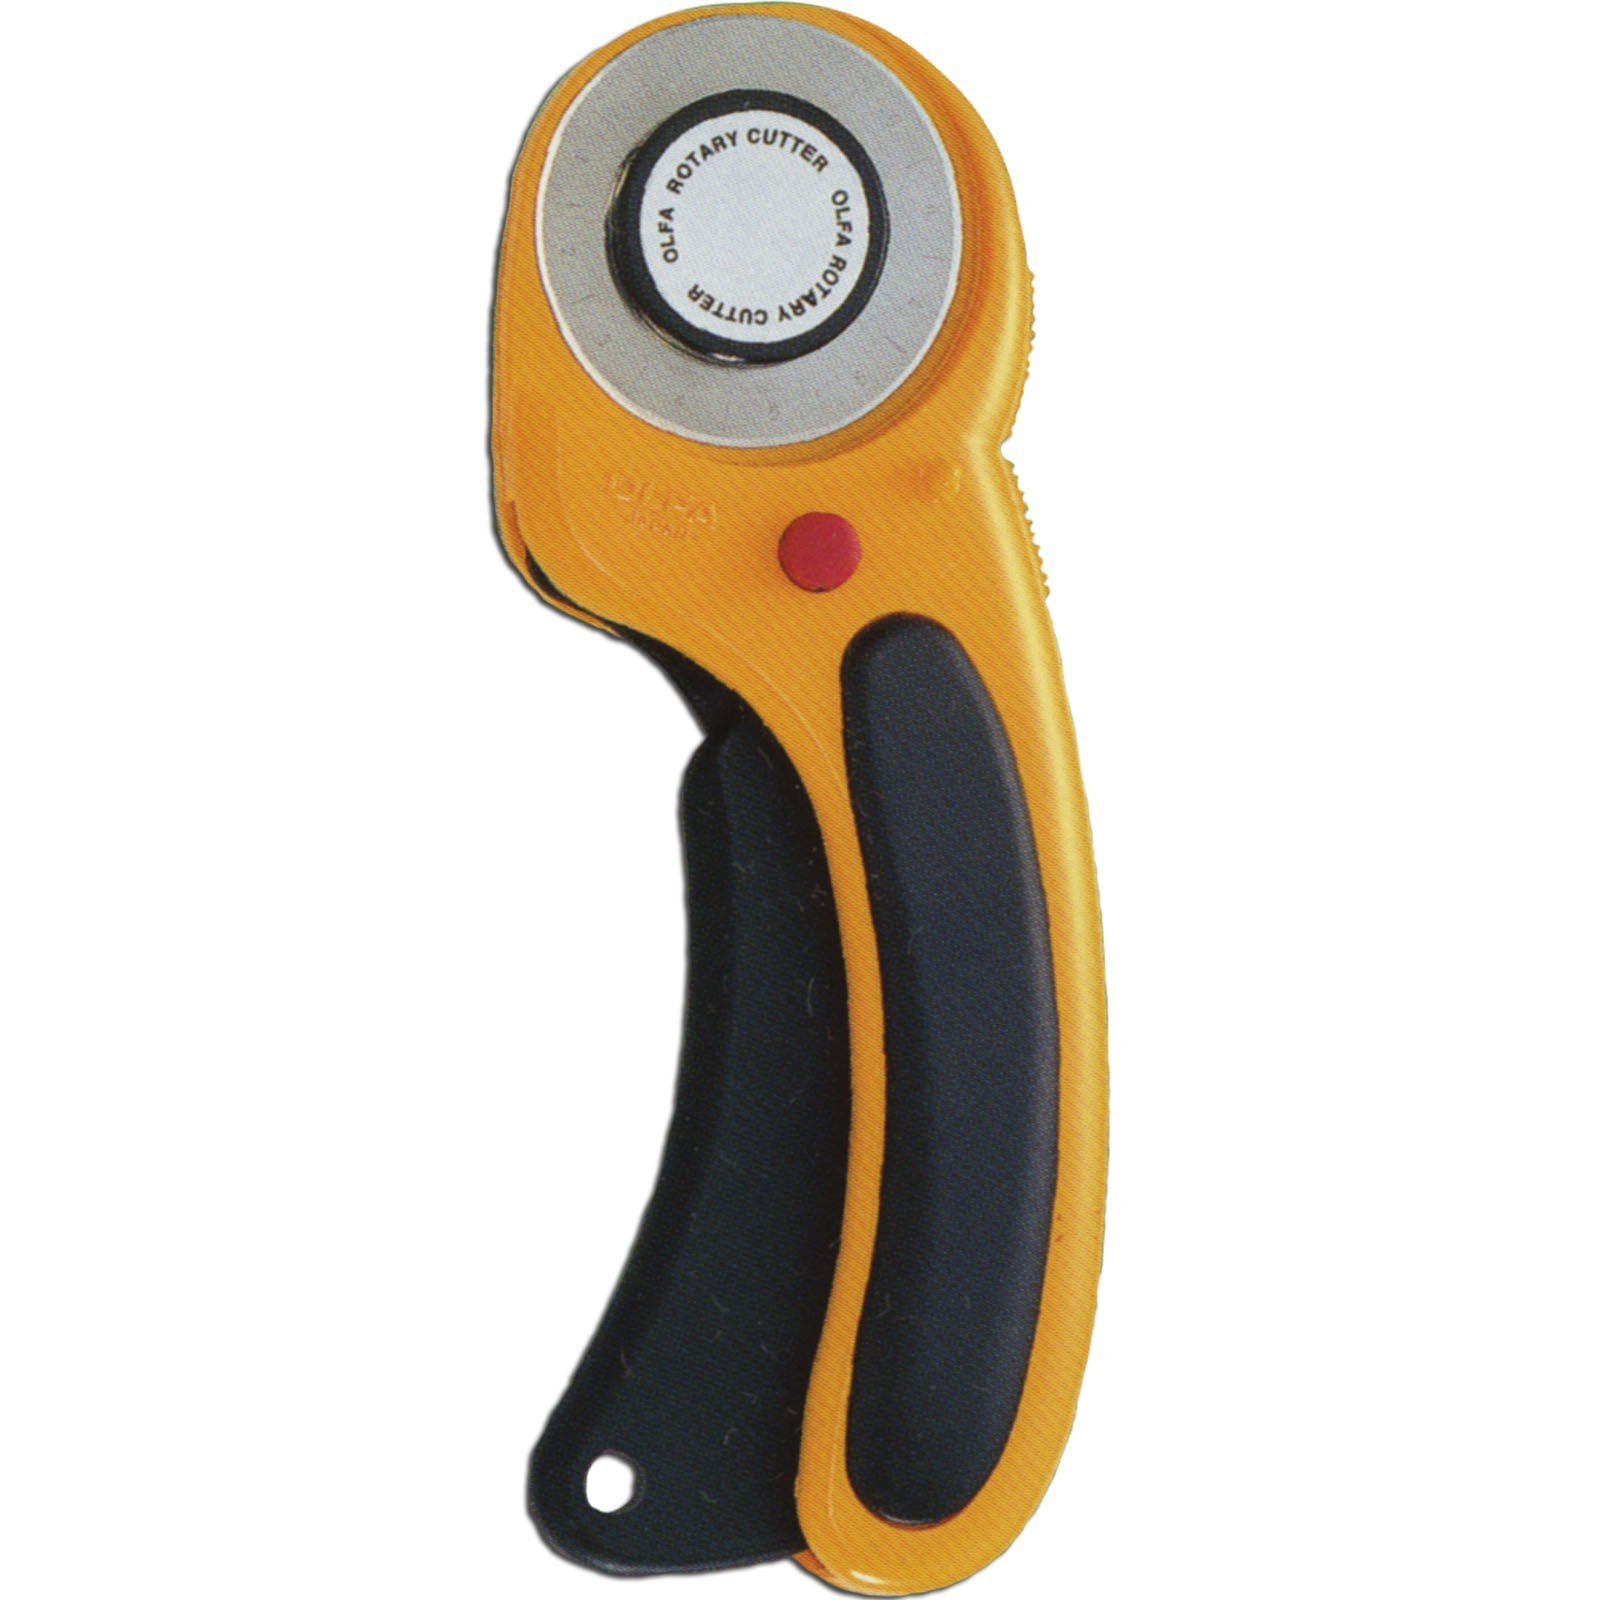 45mm Deluxe Rotary Cutter!